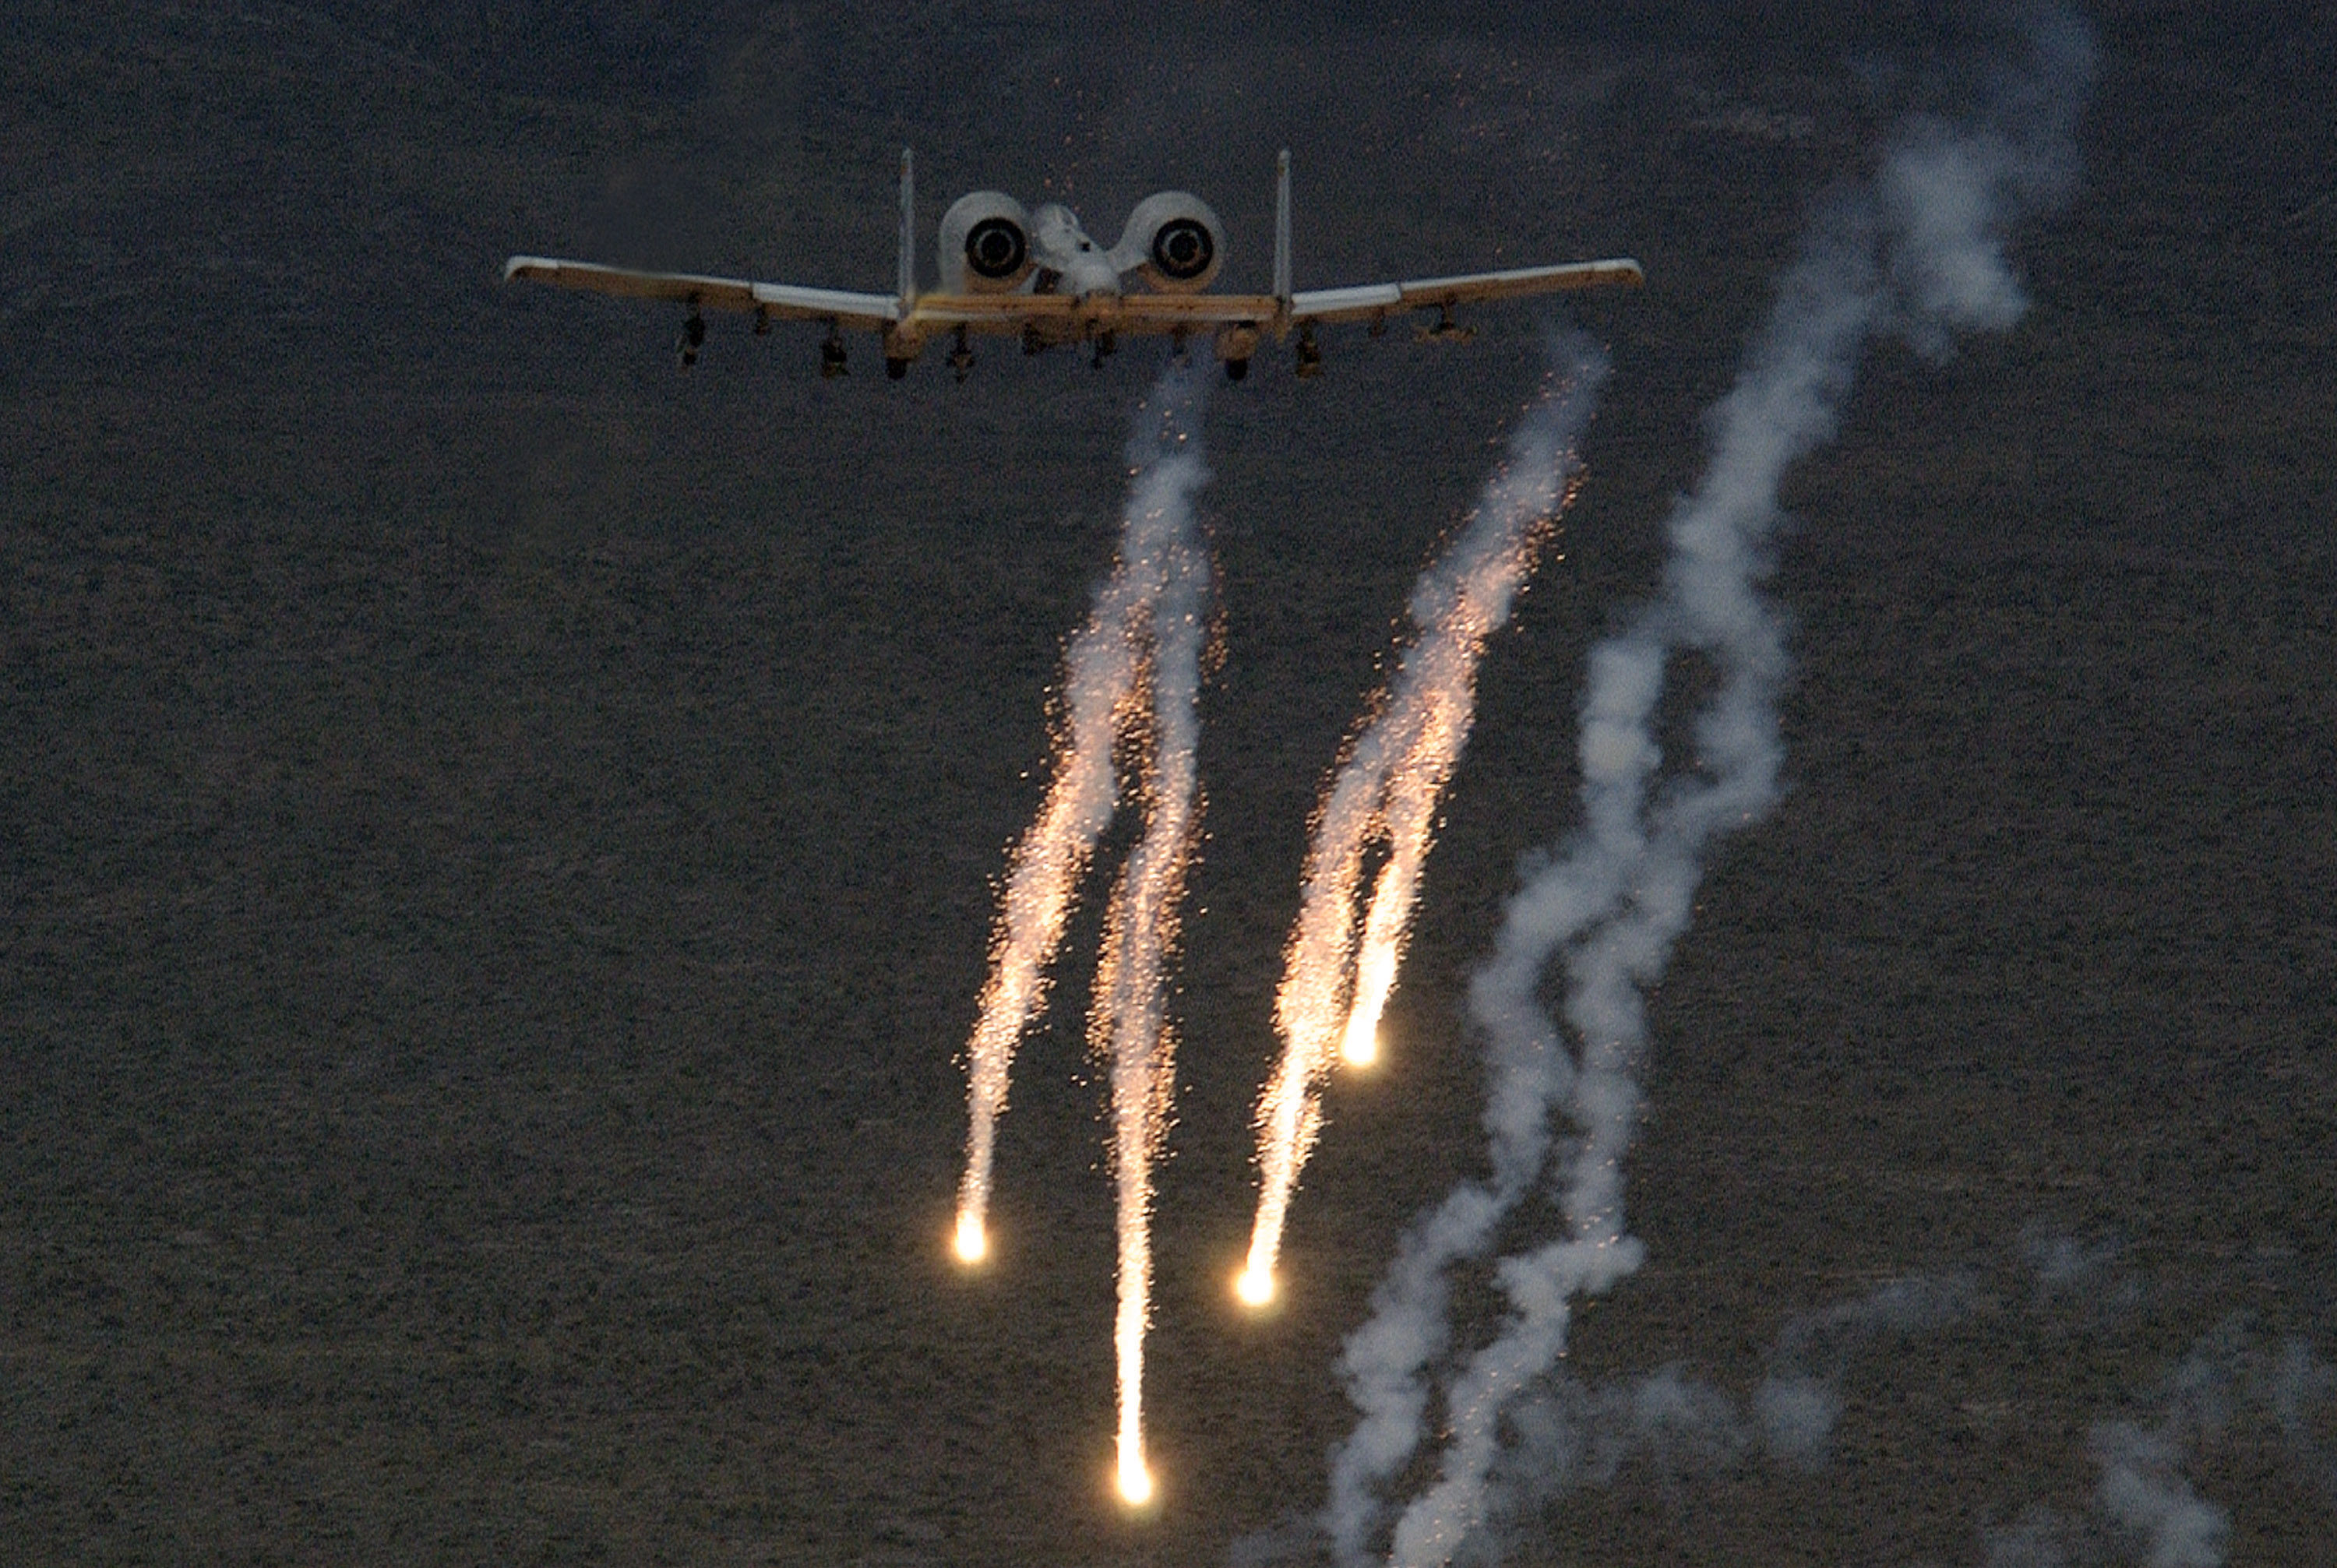 File:A10 chaff and flares.jpg - Wikimedia Commons